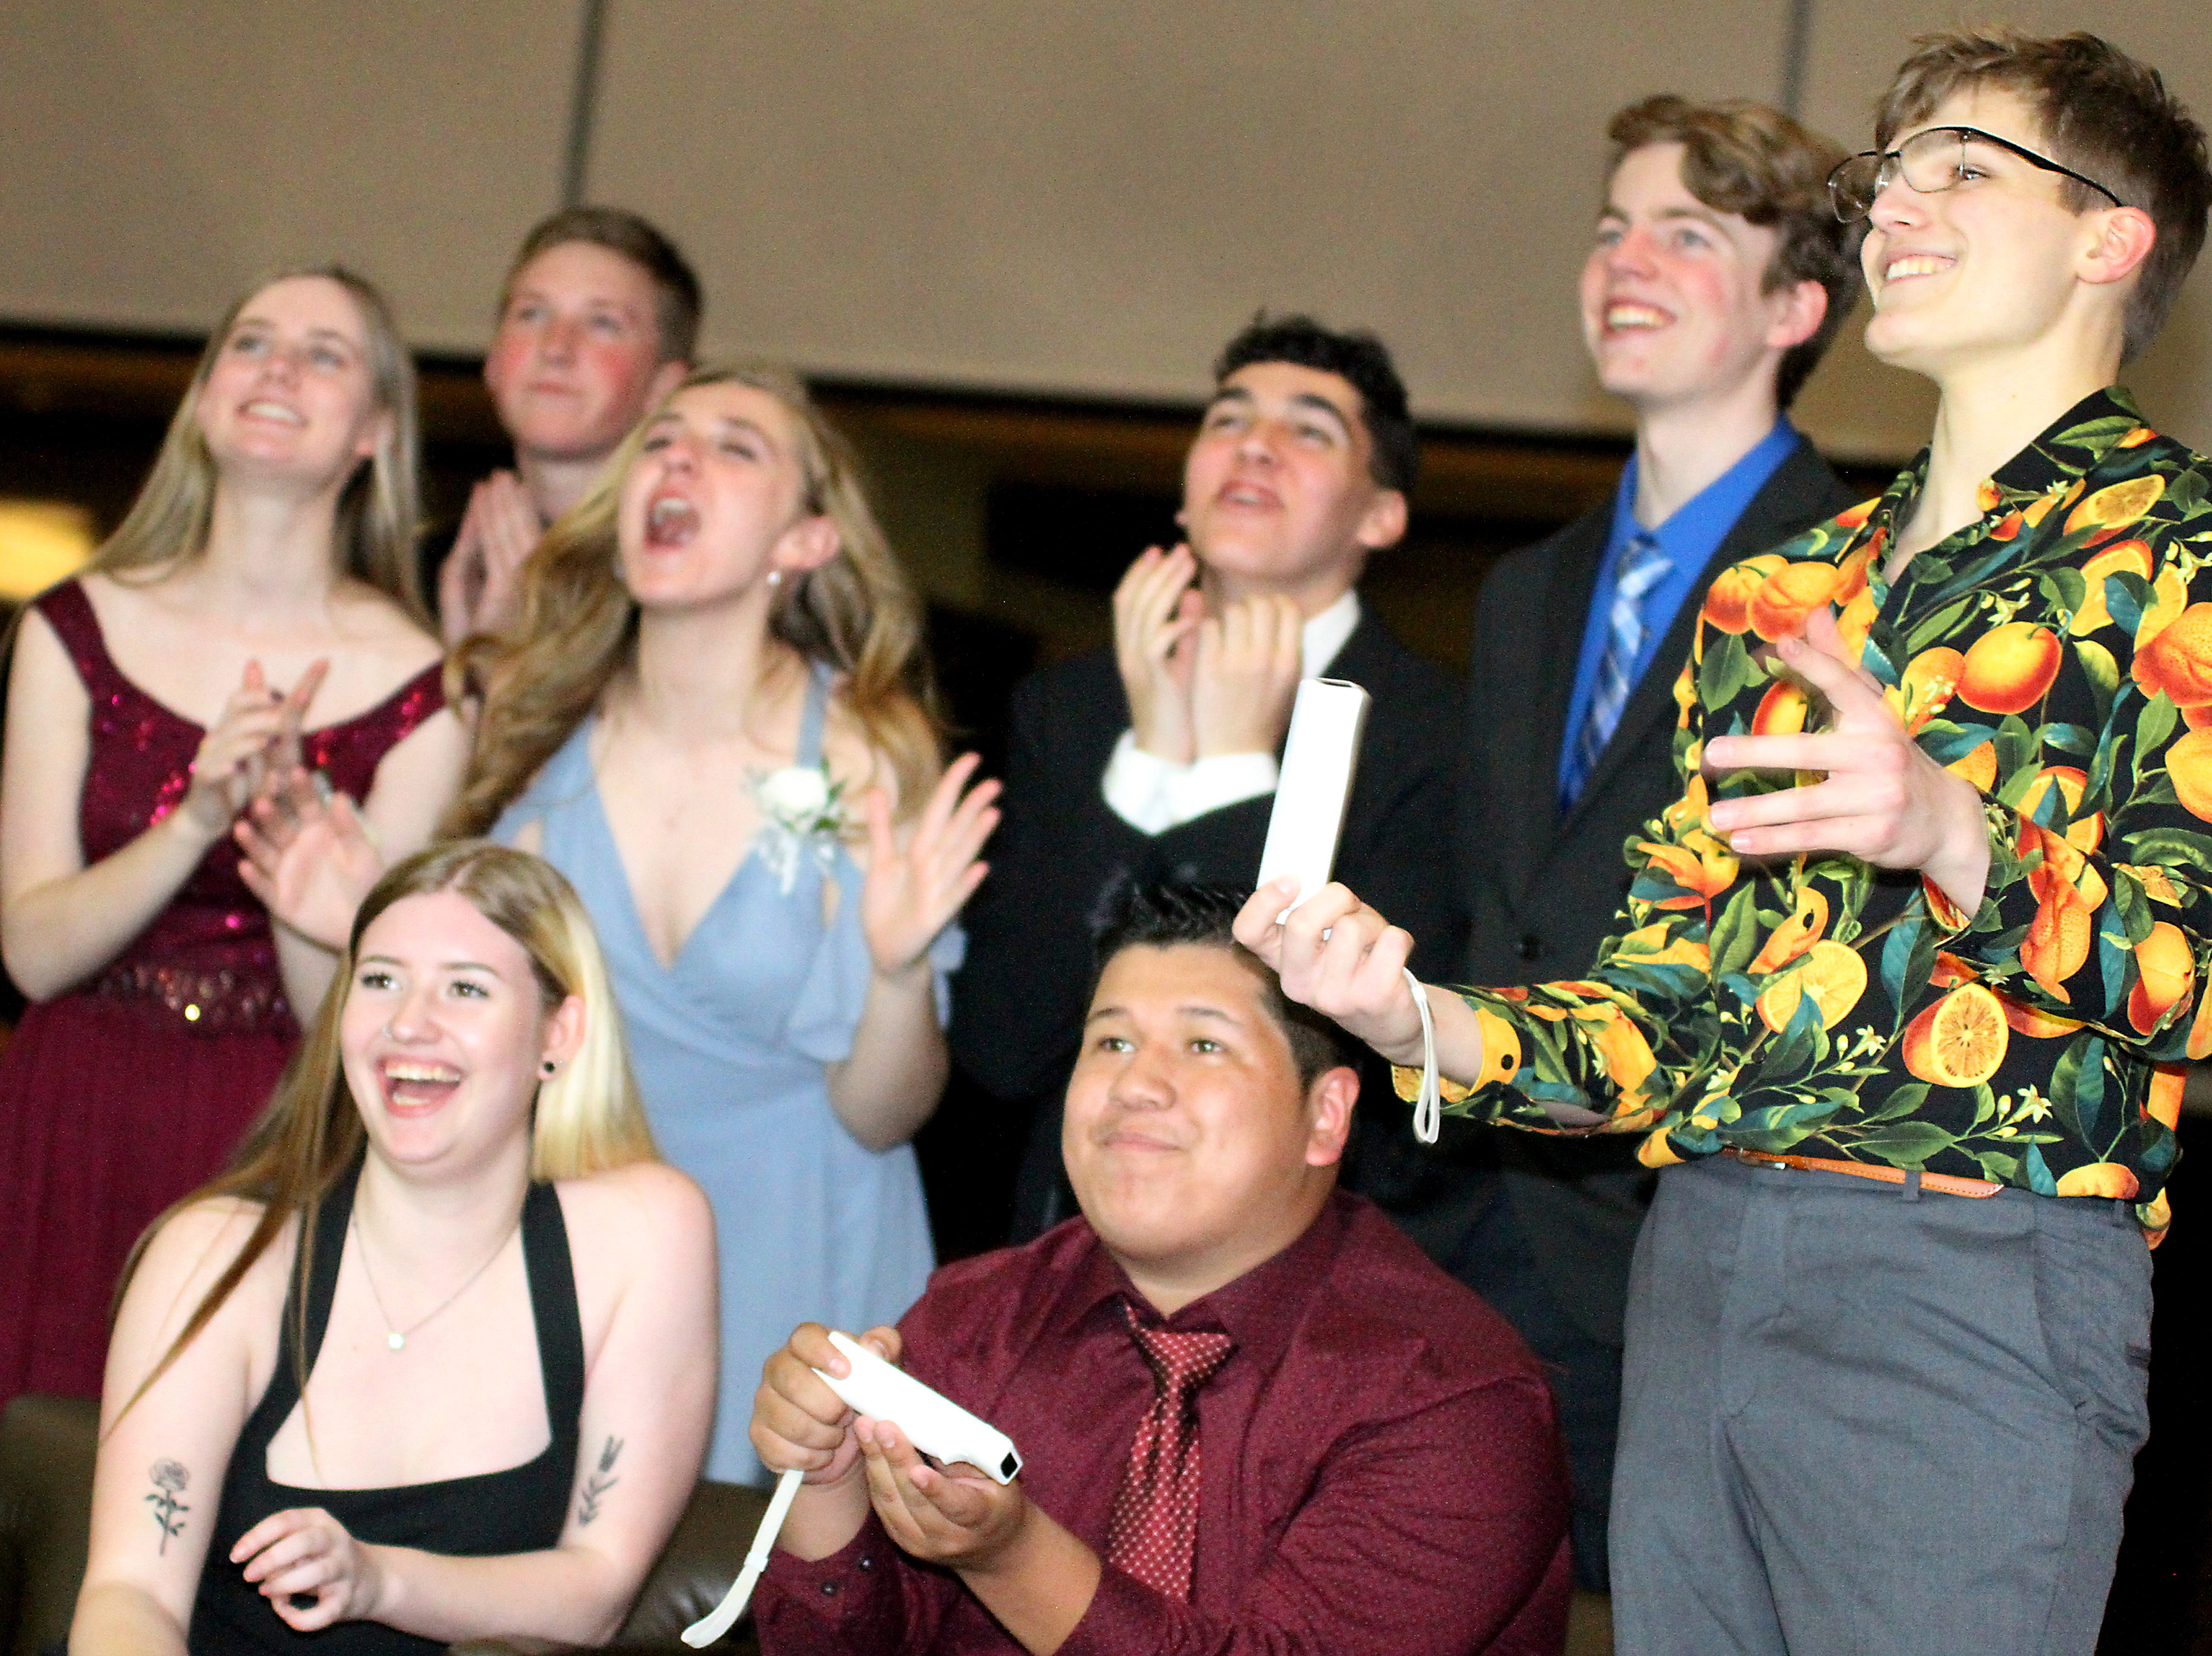 Joel Blocker / For the ColoradoanFort Collins High School students enjoy some video games in lounge area during the LambkinsÕ school prom held at Canvas stadium Saturday night.